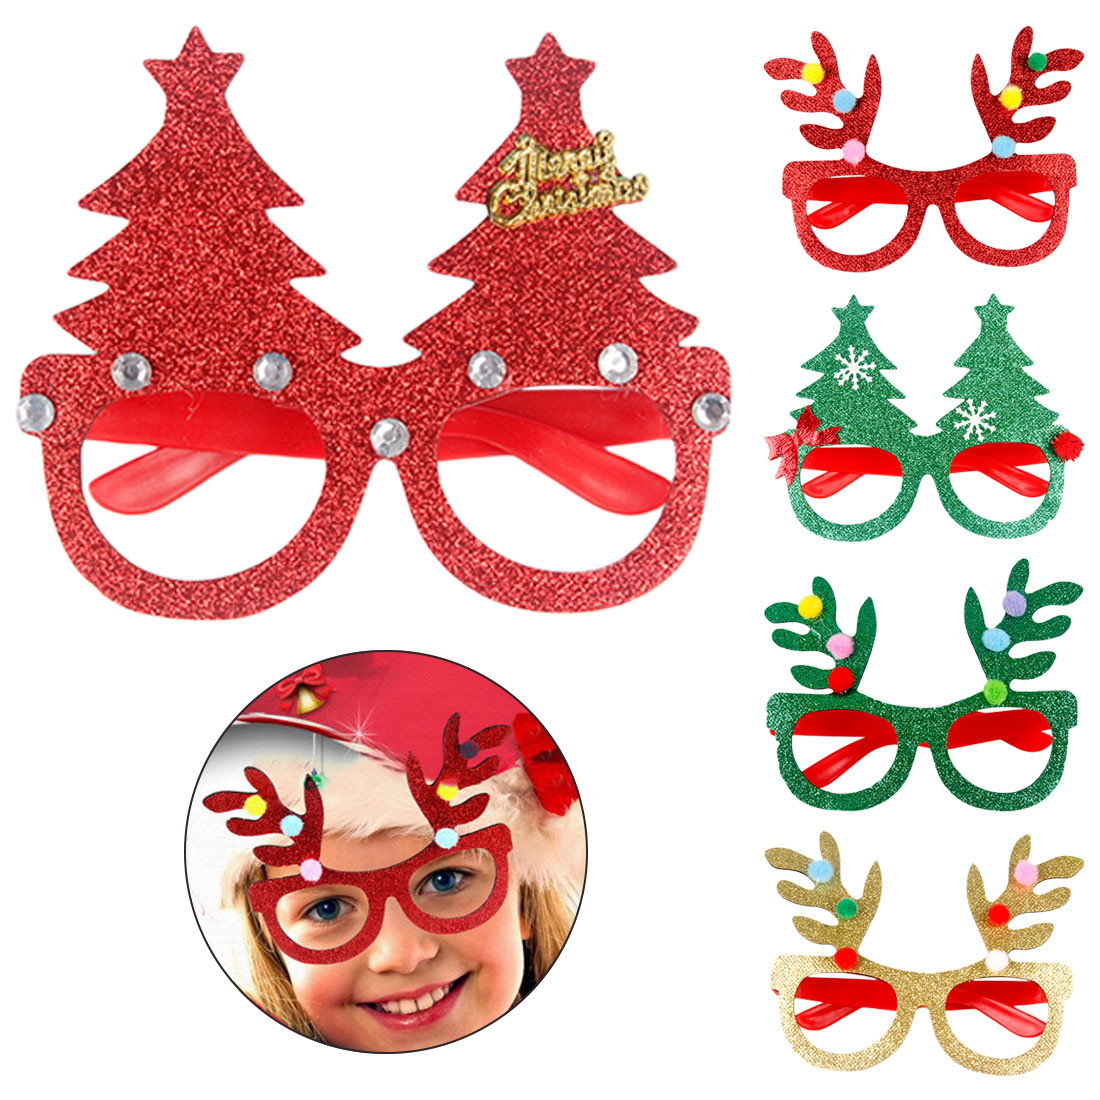 Popular Christmas Decoration Glasses Children Christmas Gifts Holiday Supplies Paper Led Party Creative Glasses Let Our Commodities Go To The World Men's Glasses Men's Eyewear Frames